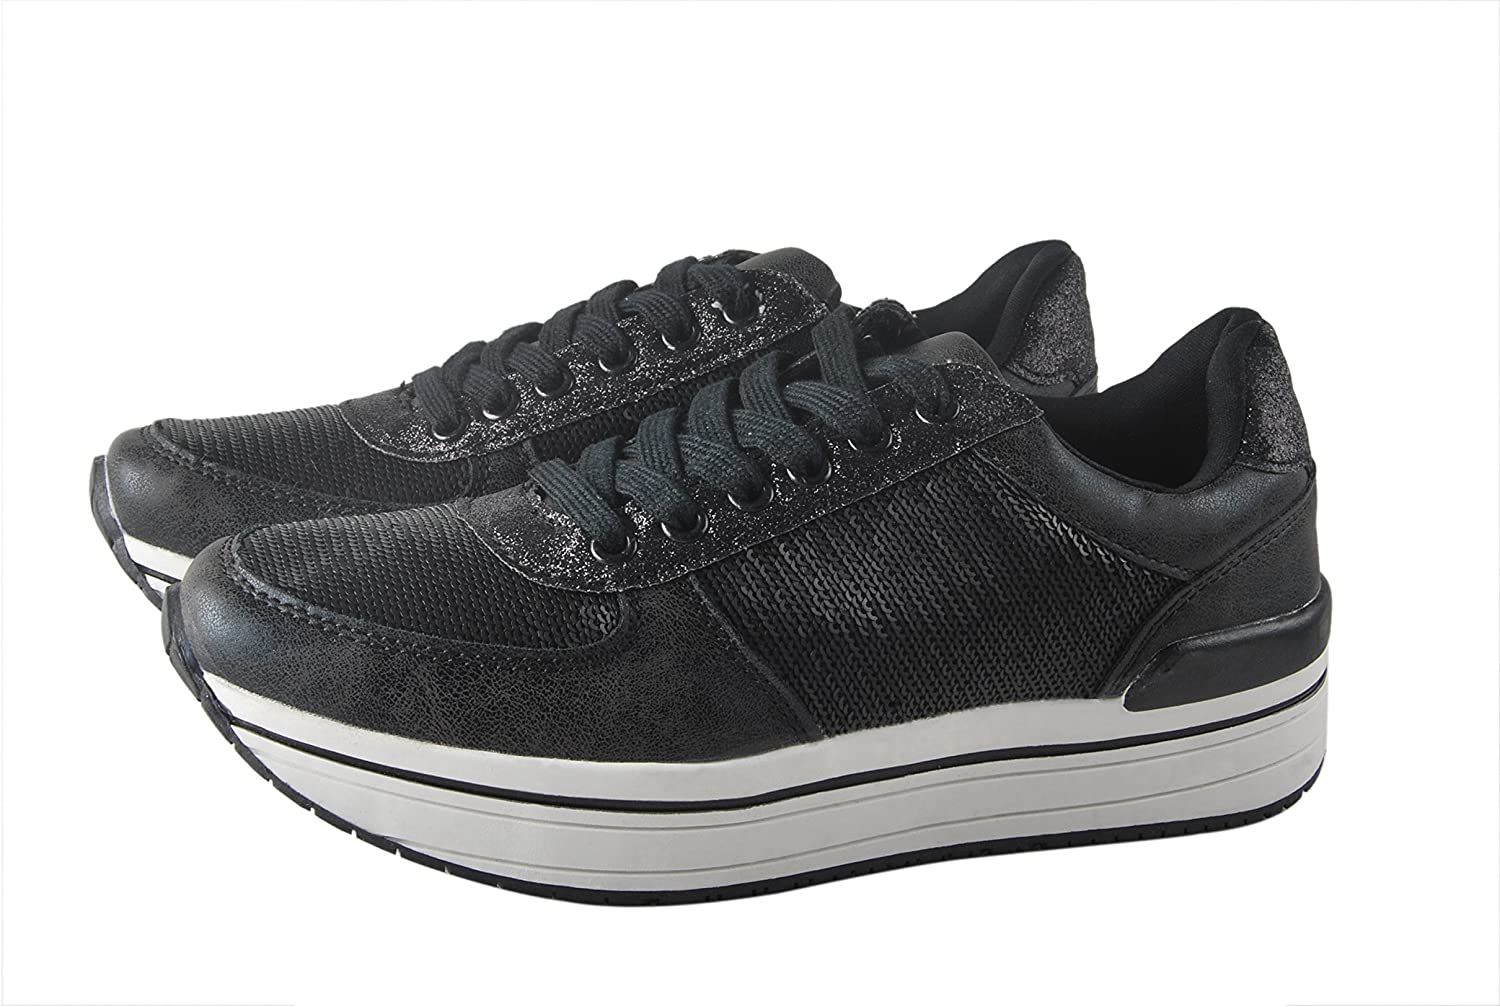 Lucky Step Women Fashion Sequin Casual shoes Lace up Platform Walking Sneakers for Women Black